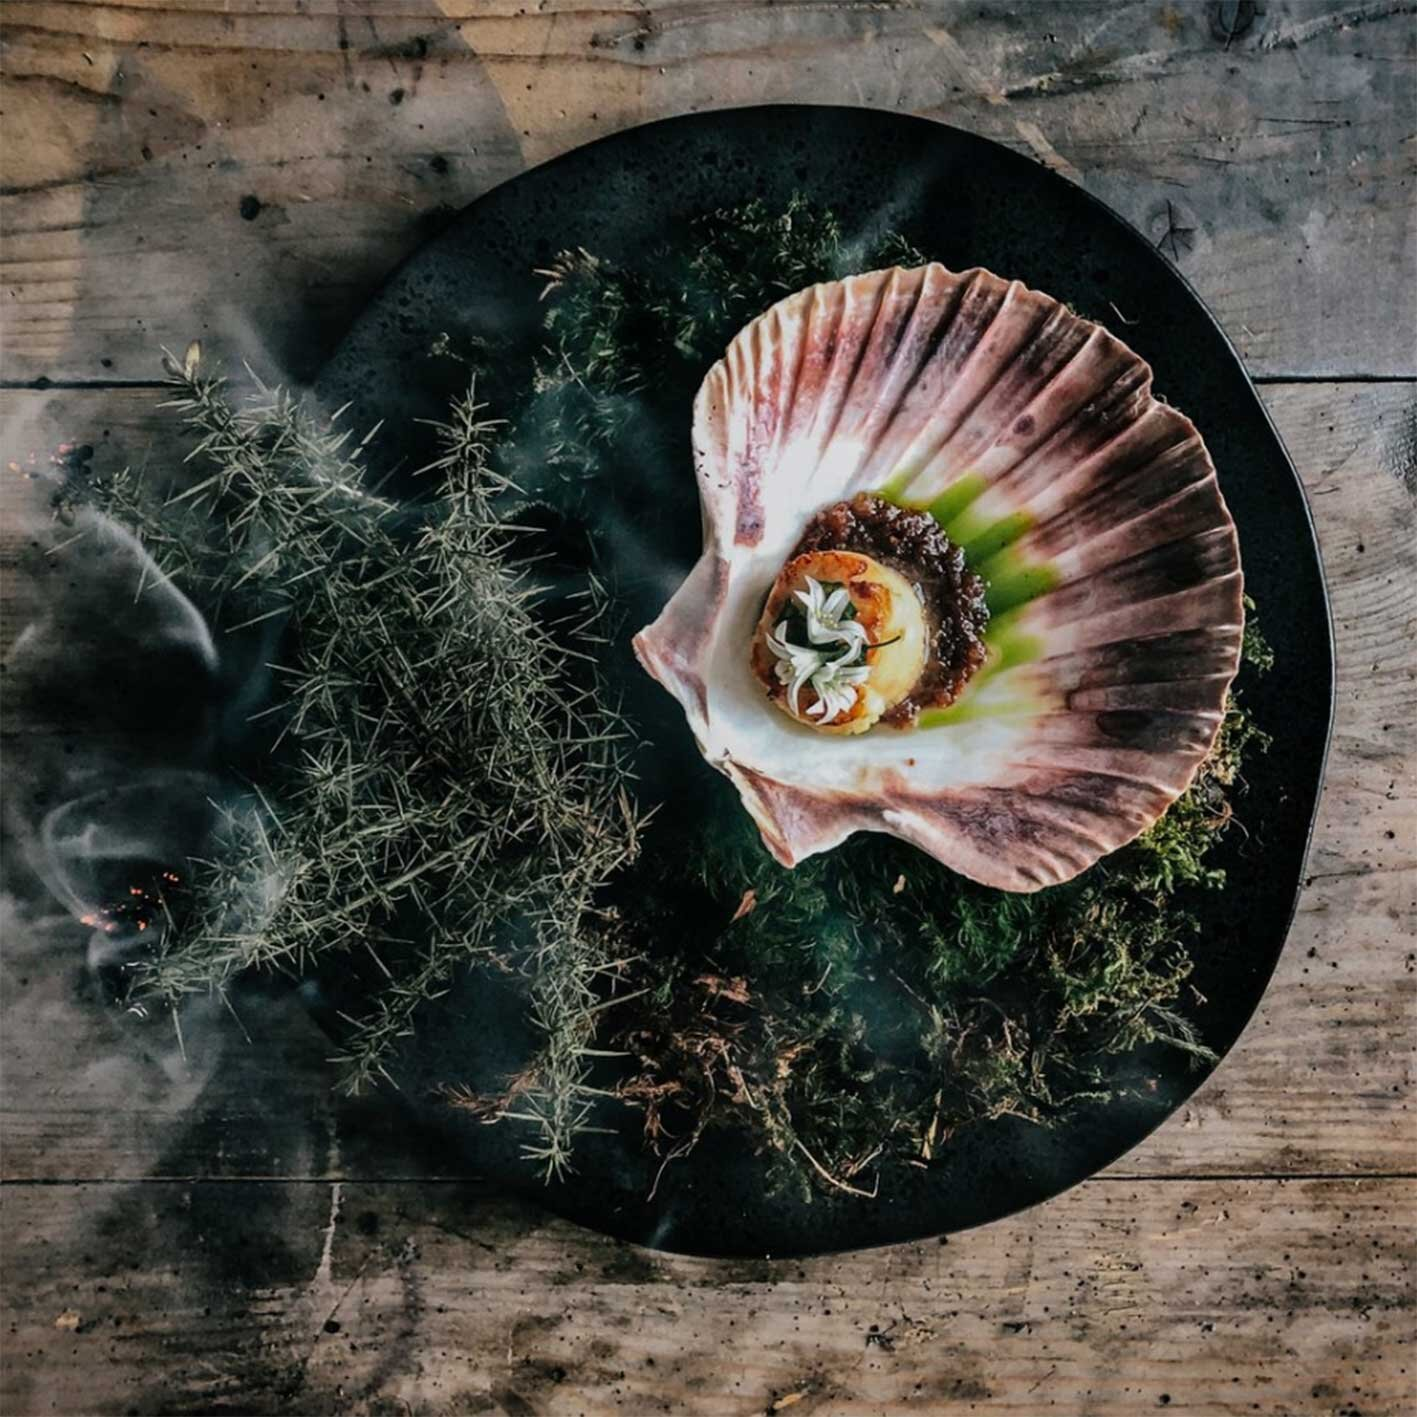 FIRE+WILD Scallops Wild Boar Feast Forage Cook with Fire East Sussex Lewes